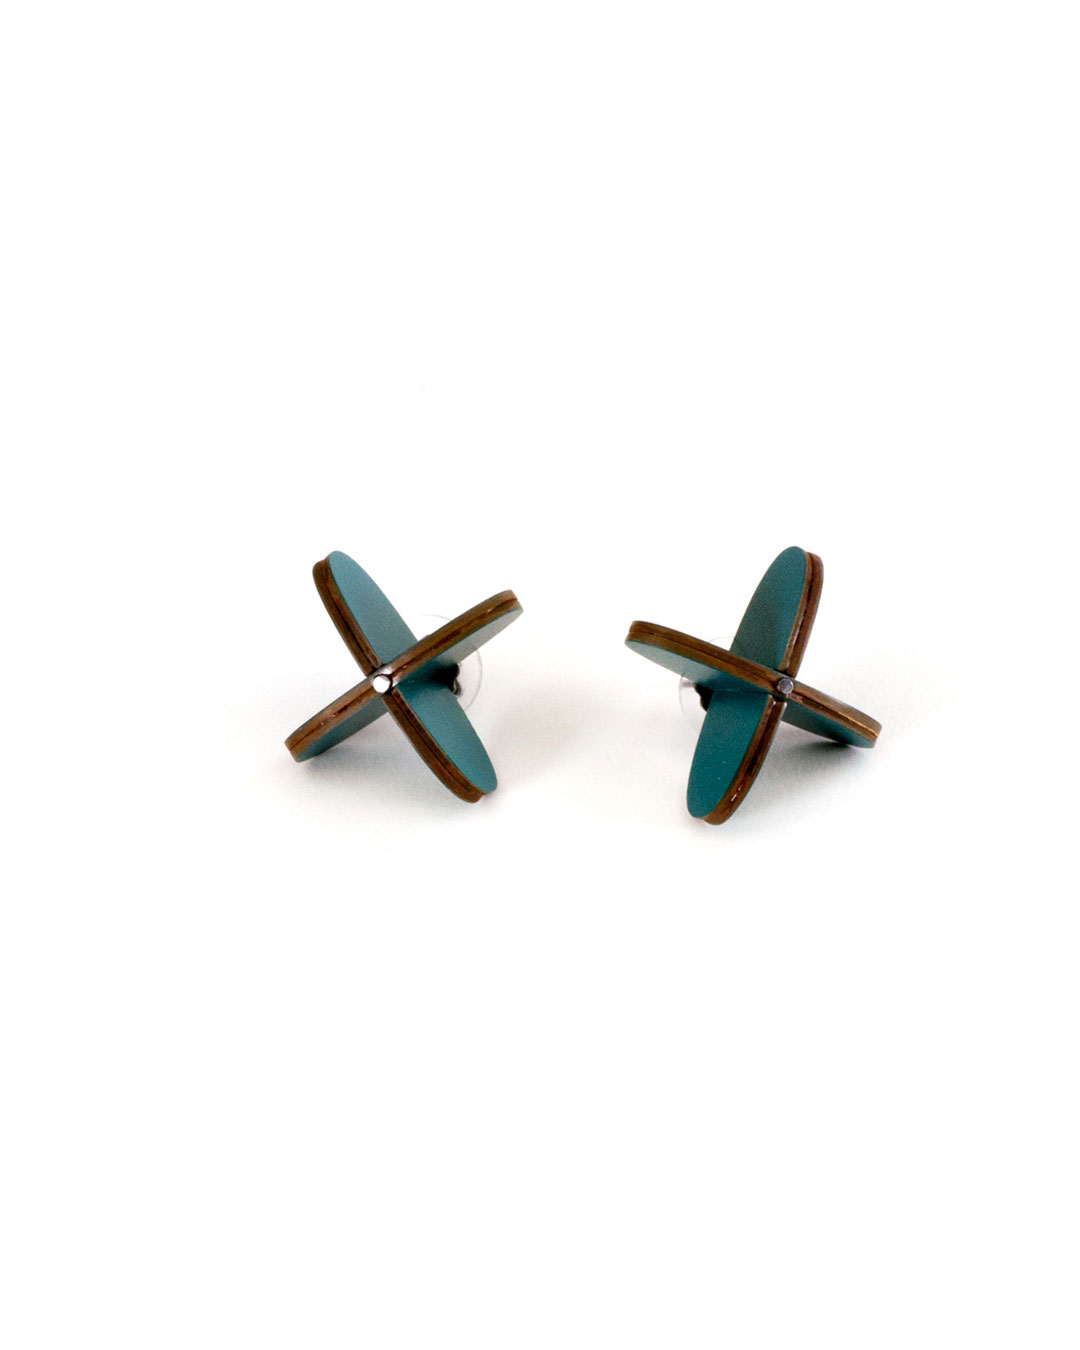 Rebecca Hannon, Pinwheel, 2015, earrings; laminate, silver, 30 x 30 x 25 mm, €340